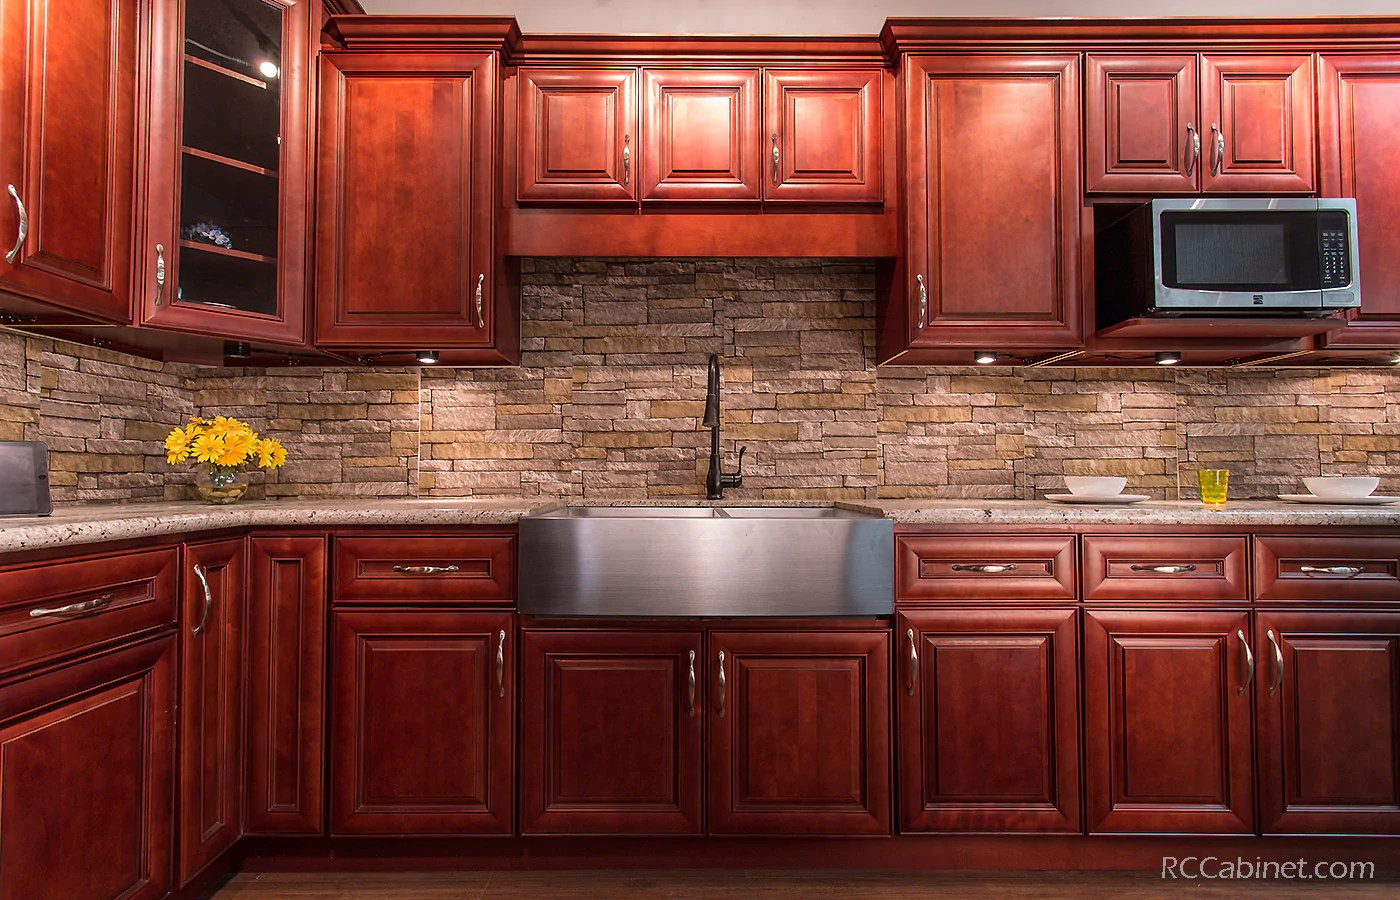 kitchen cabinets santa ana ca contemporary chairs royal crown and bath showroom photo gallery